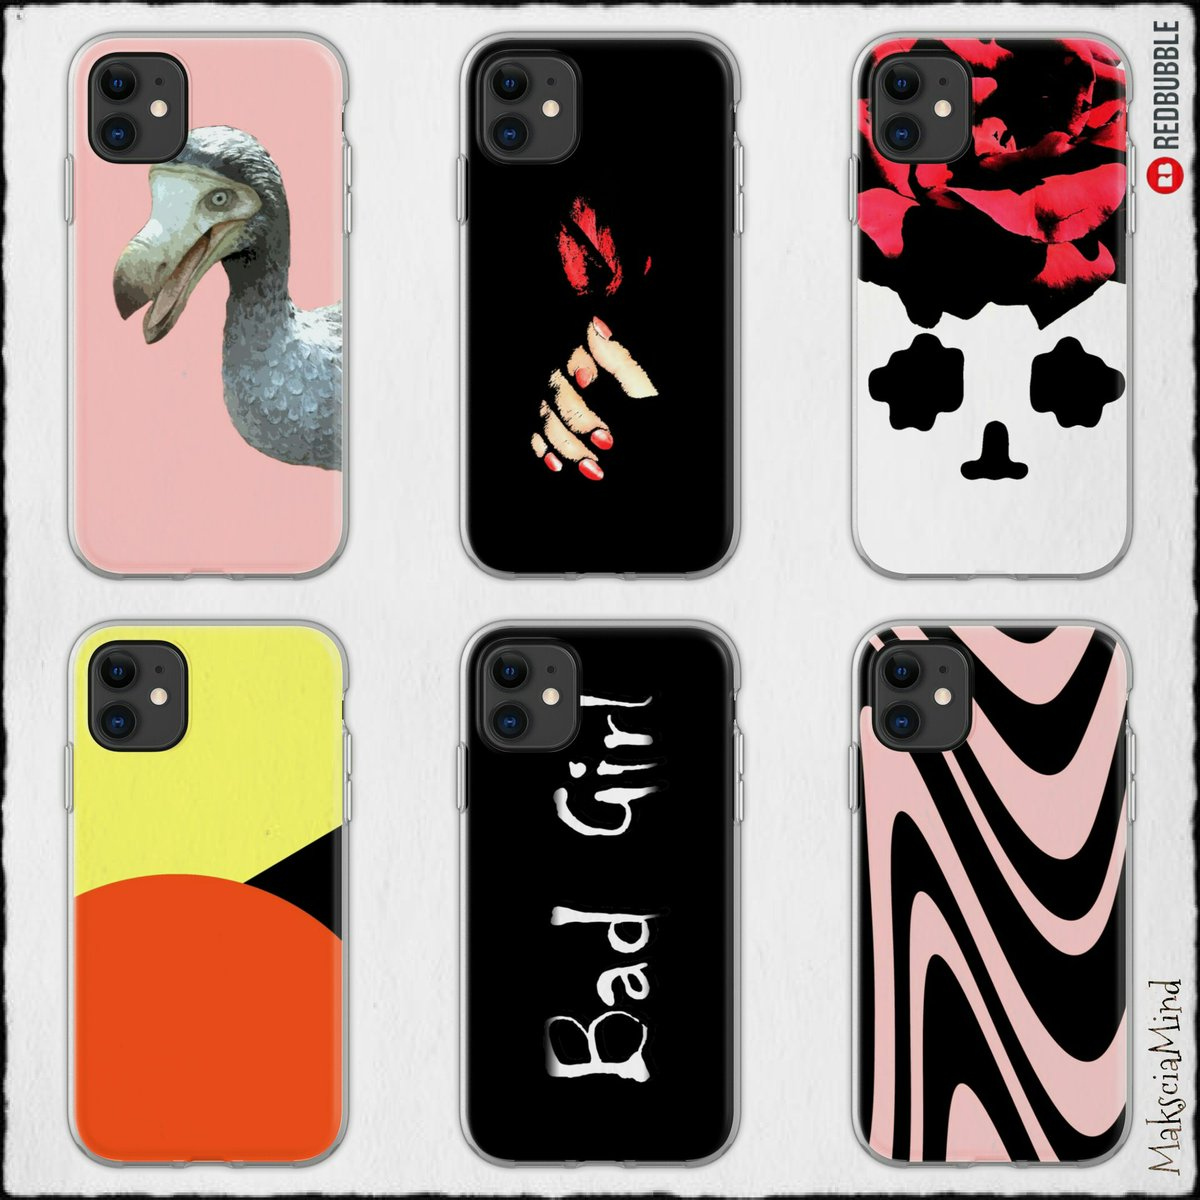 Check out iPhone Cases in my Redbubble Shop 》》》  Link -》   #redbubble #coverforiphone #snapcase #toughcase #softcase #iphone11 #iPhone11Pro #iPhone11ProMax #iphonexs #iphonexsmax #iphonexr #iphonex #cover #dodo #redrose  By #maksciamind #findyourthing